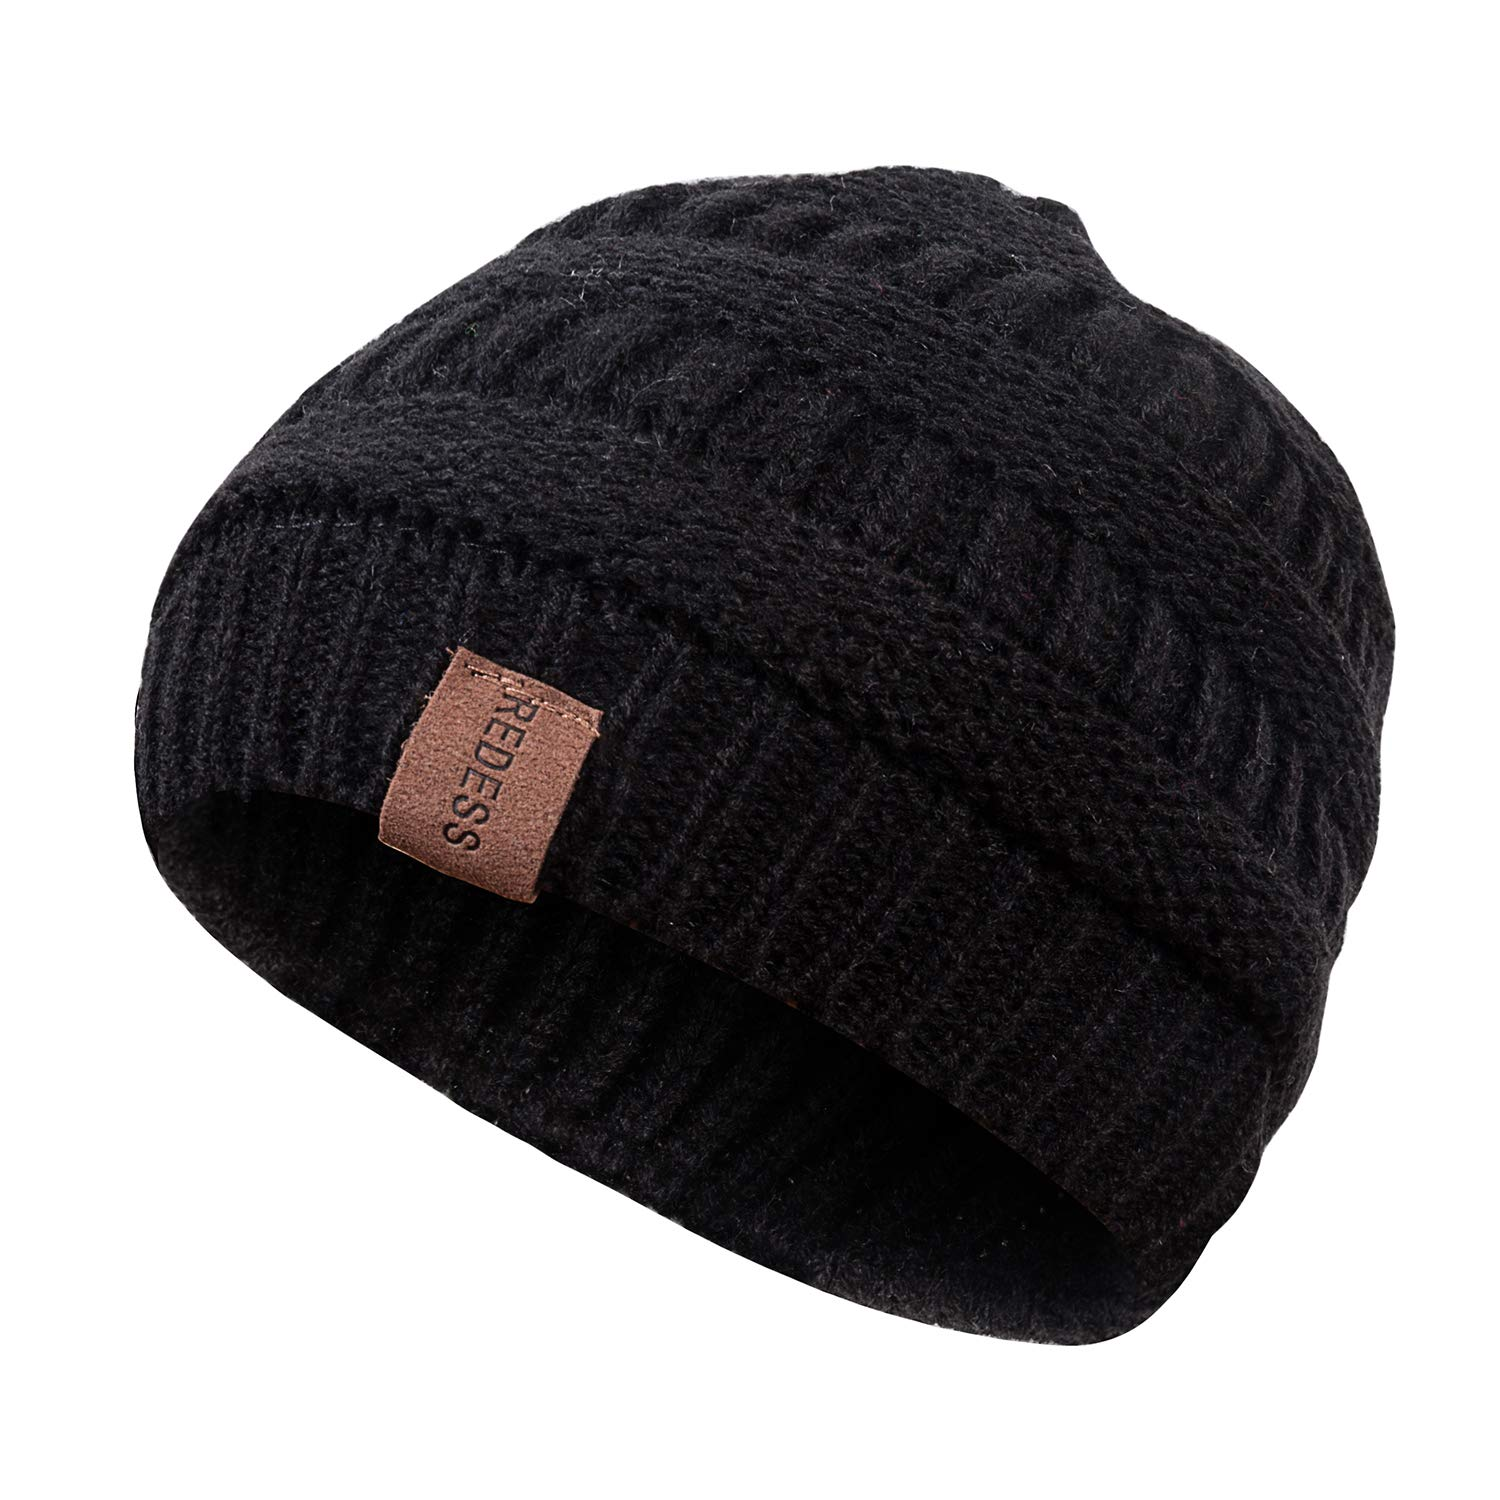 1c561f03d4f4e REDESS Kids Winter Warm Fleece Lined Hat, Baby Toddler Children's Beanie  Pom Pom Knit Cap for Girls and Boys